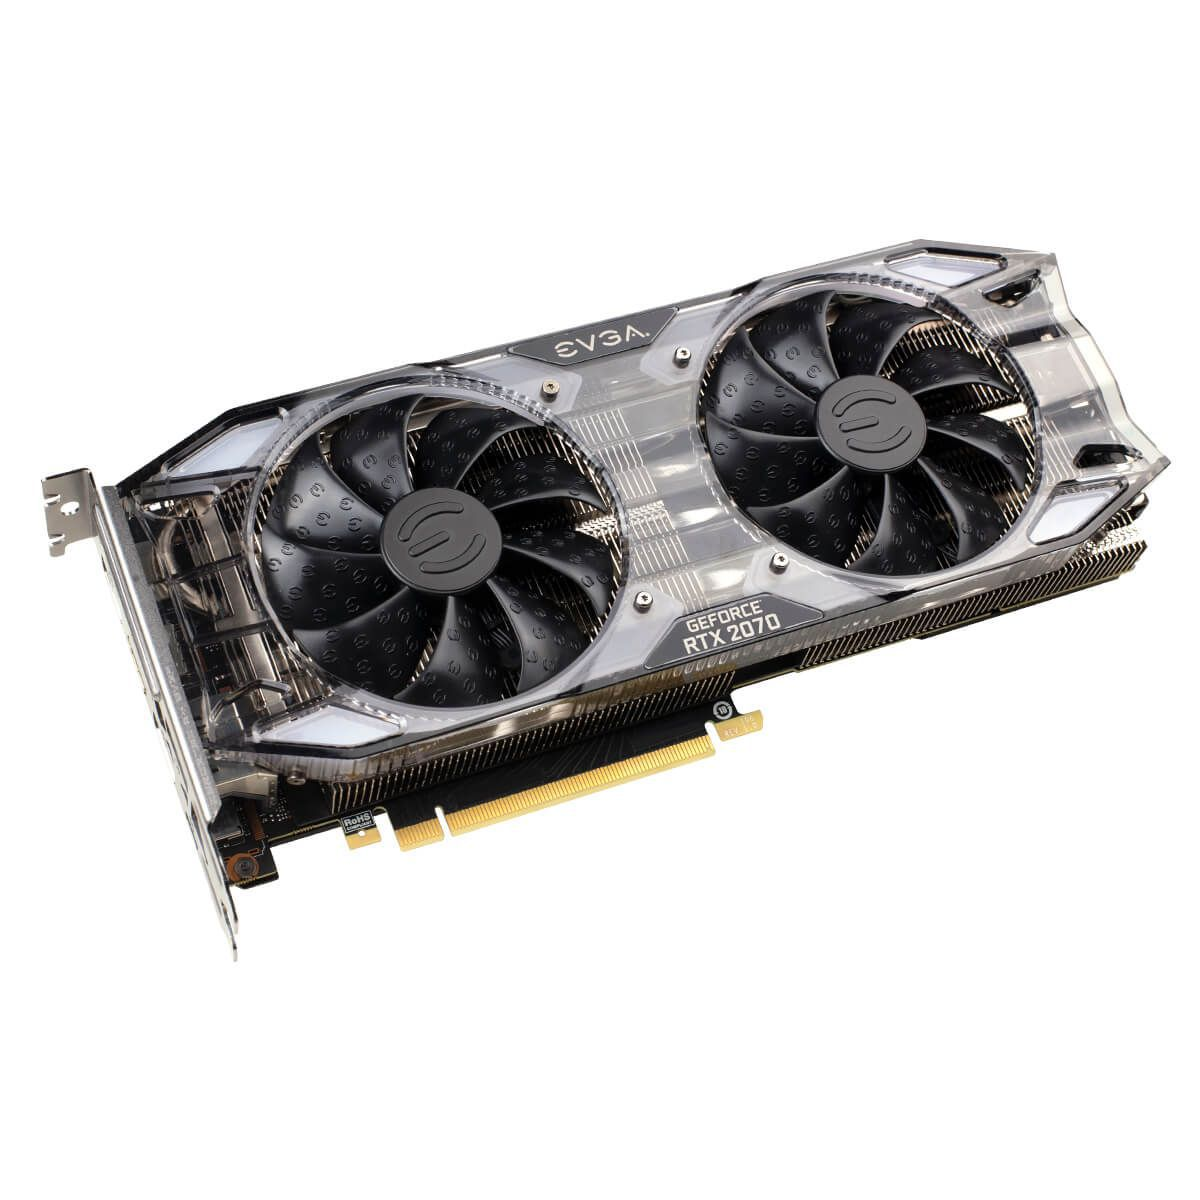 PLACA DE VIDEO EVGA NVIDIA GEFORCE RTX 2070 XC GAMING - 08G-P4-2172-KR